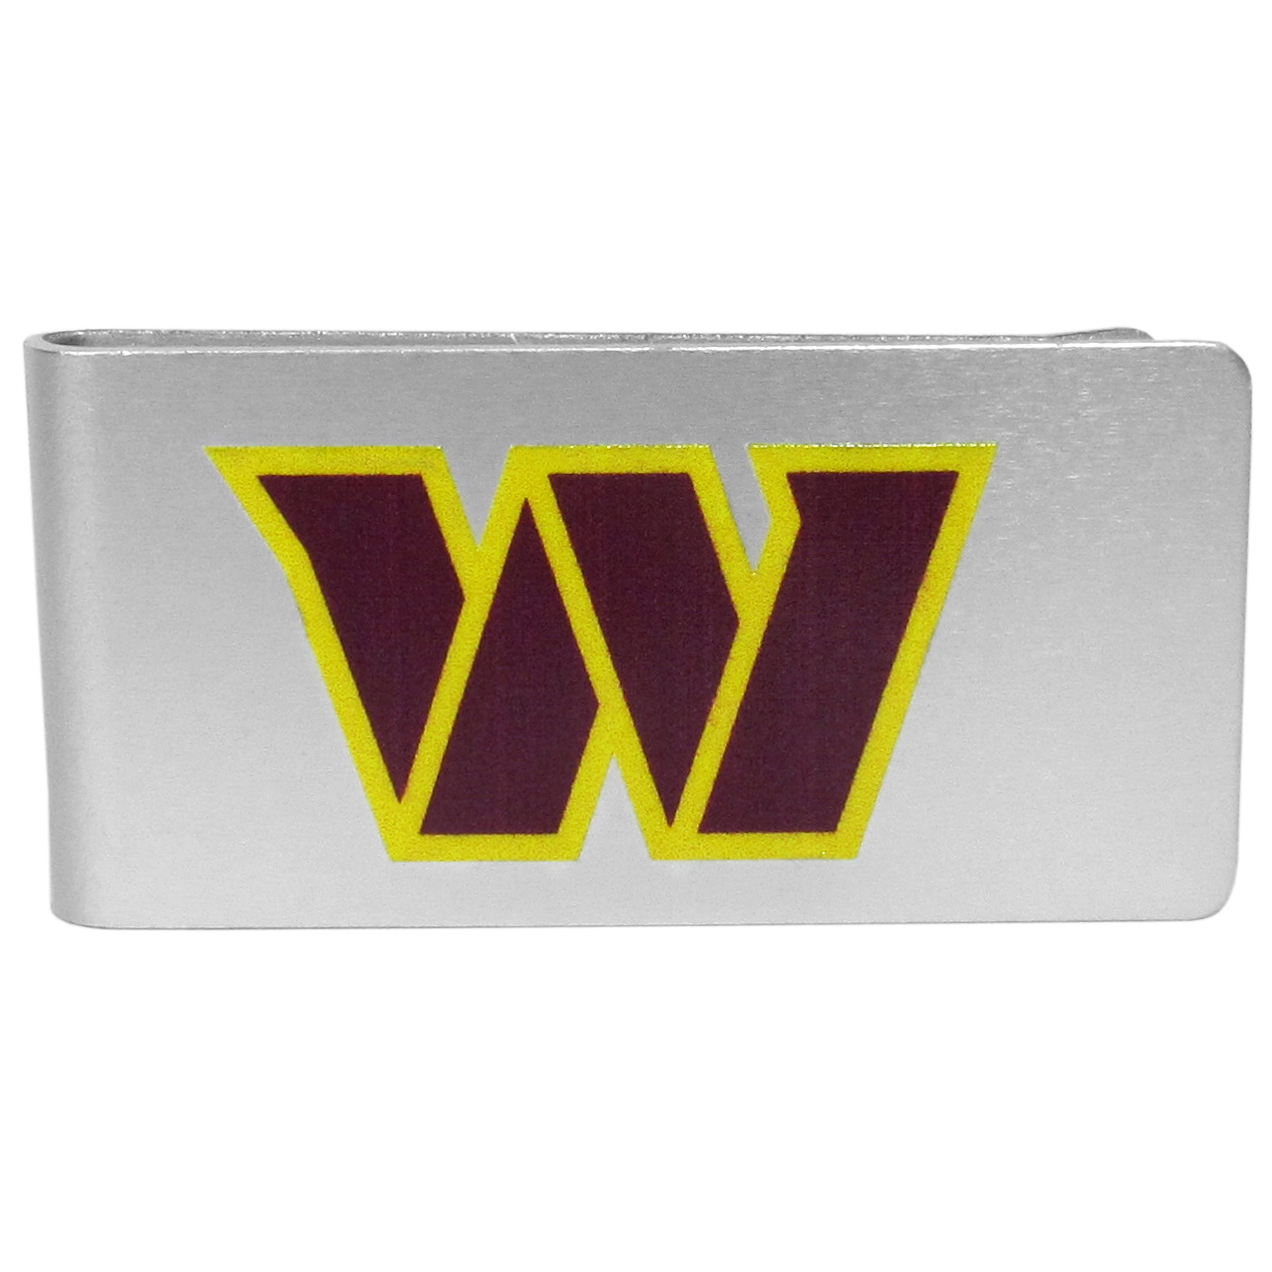 Washington Redskins Logo Money Clip - Our brushed metal money clip has classic style and functionality. The attractive clip features the Washington Redskins logo expertly printed on front.